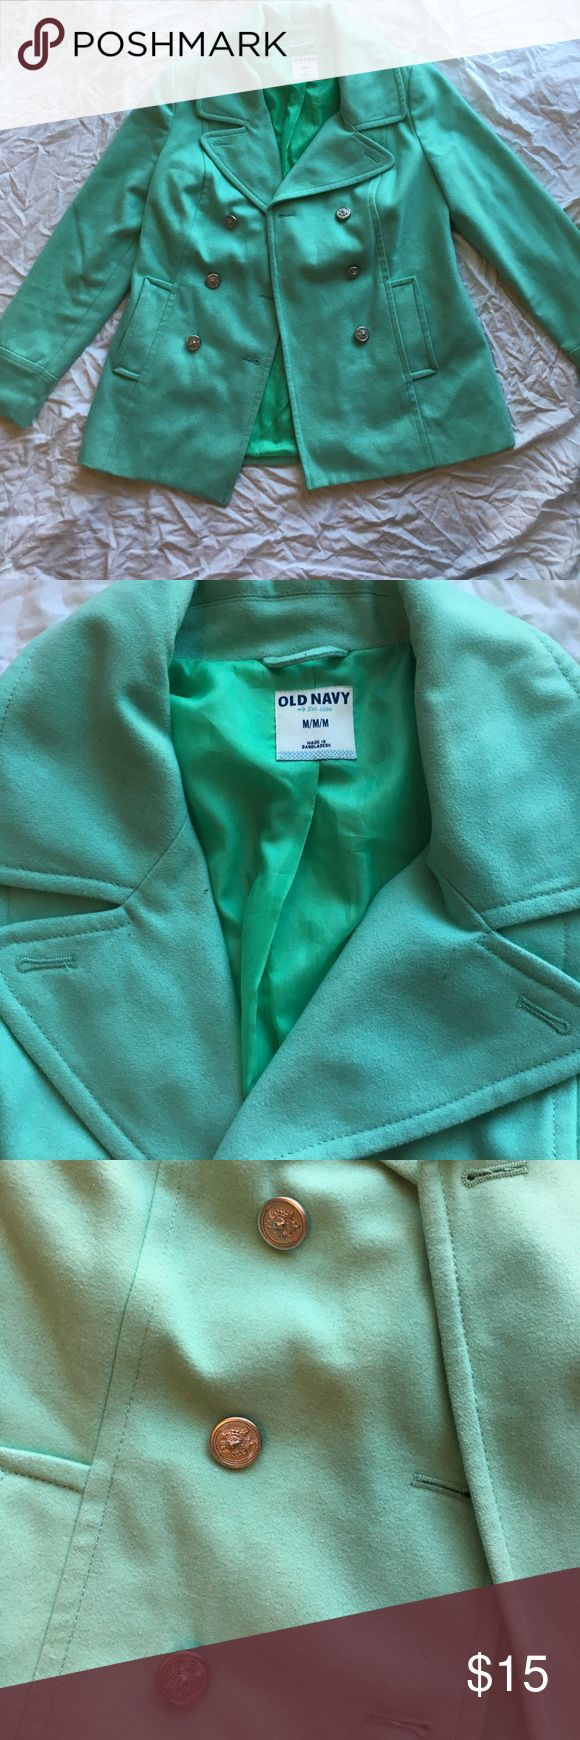 Mint green pea coat Like new- worn a small handful of times Old Navy Jackets & Coats